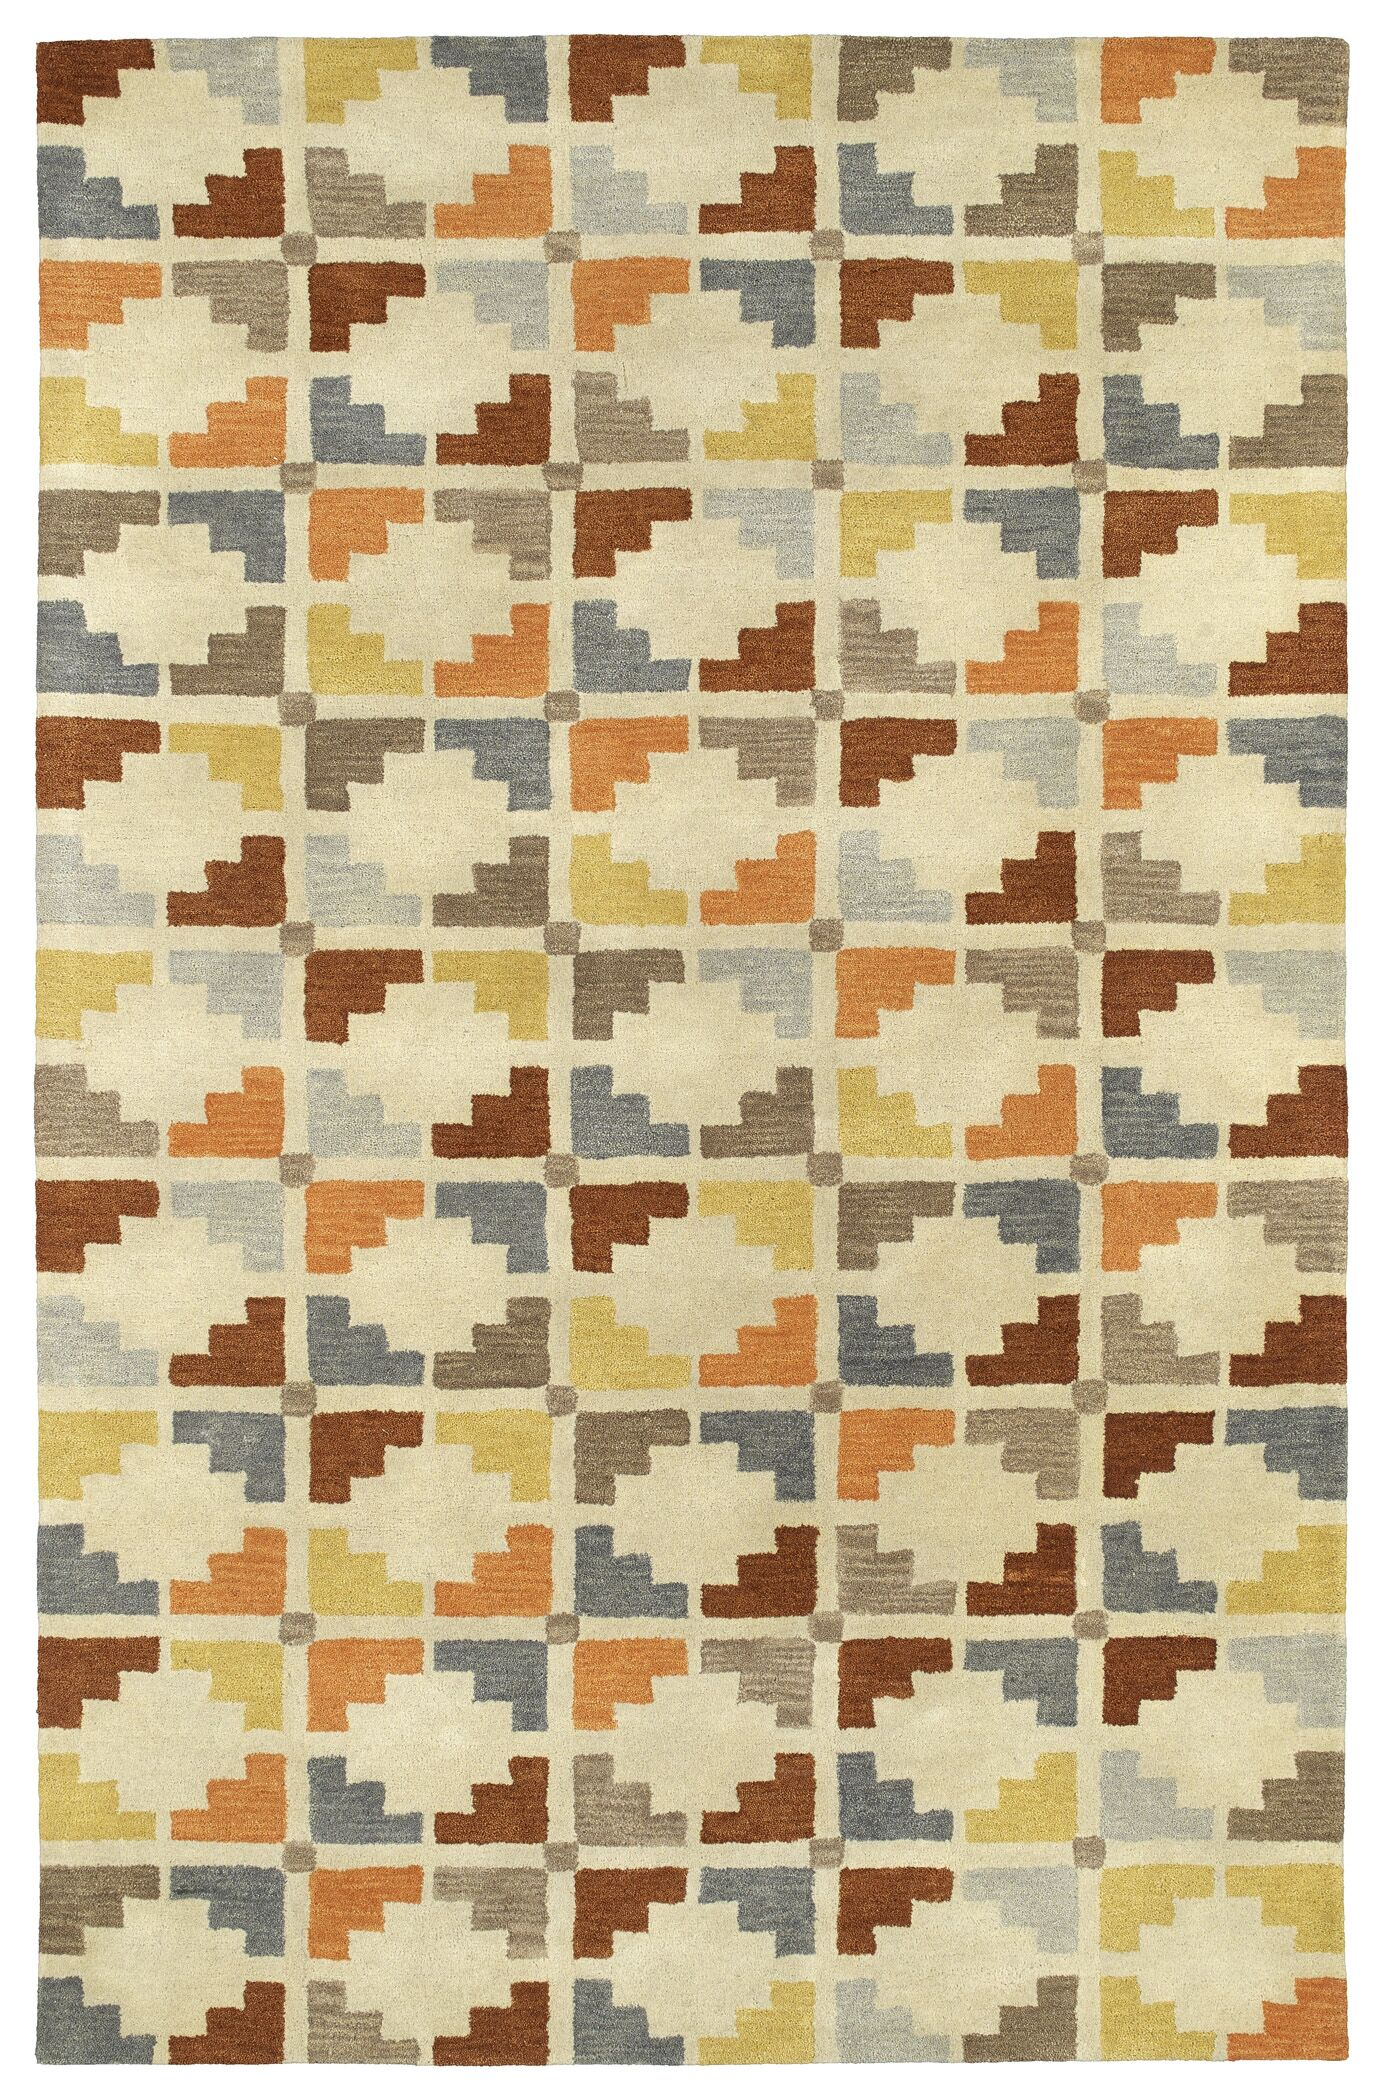 Dresden Hand Tufted Beige/Brown Area Rug Rug Size: Rectangle 5' x 7'9